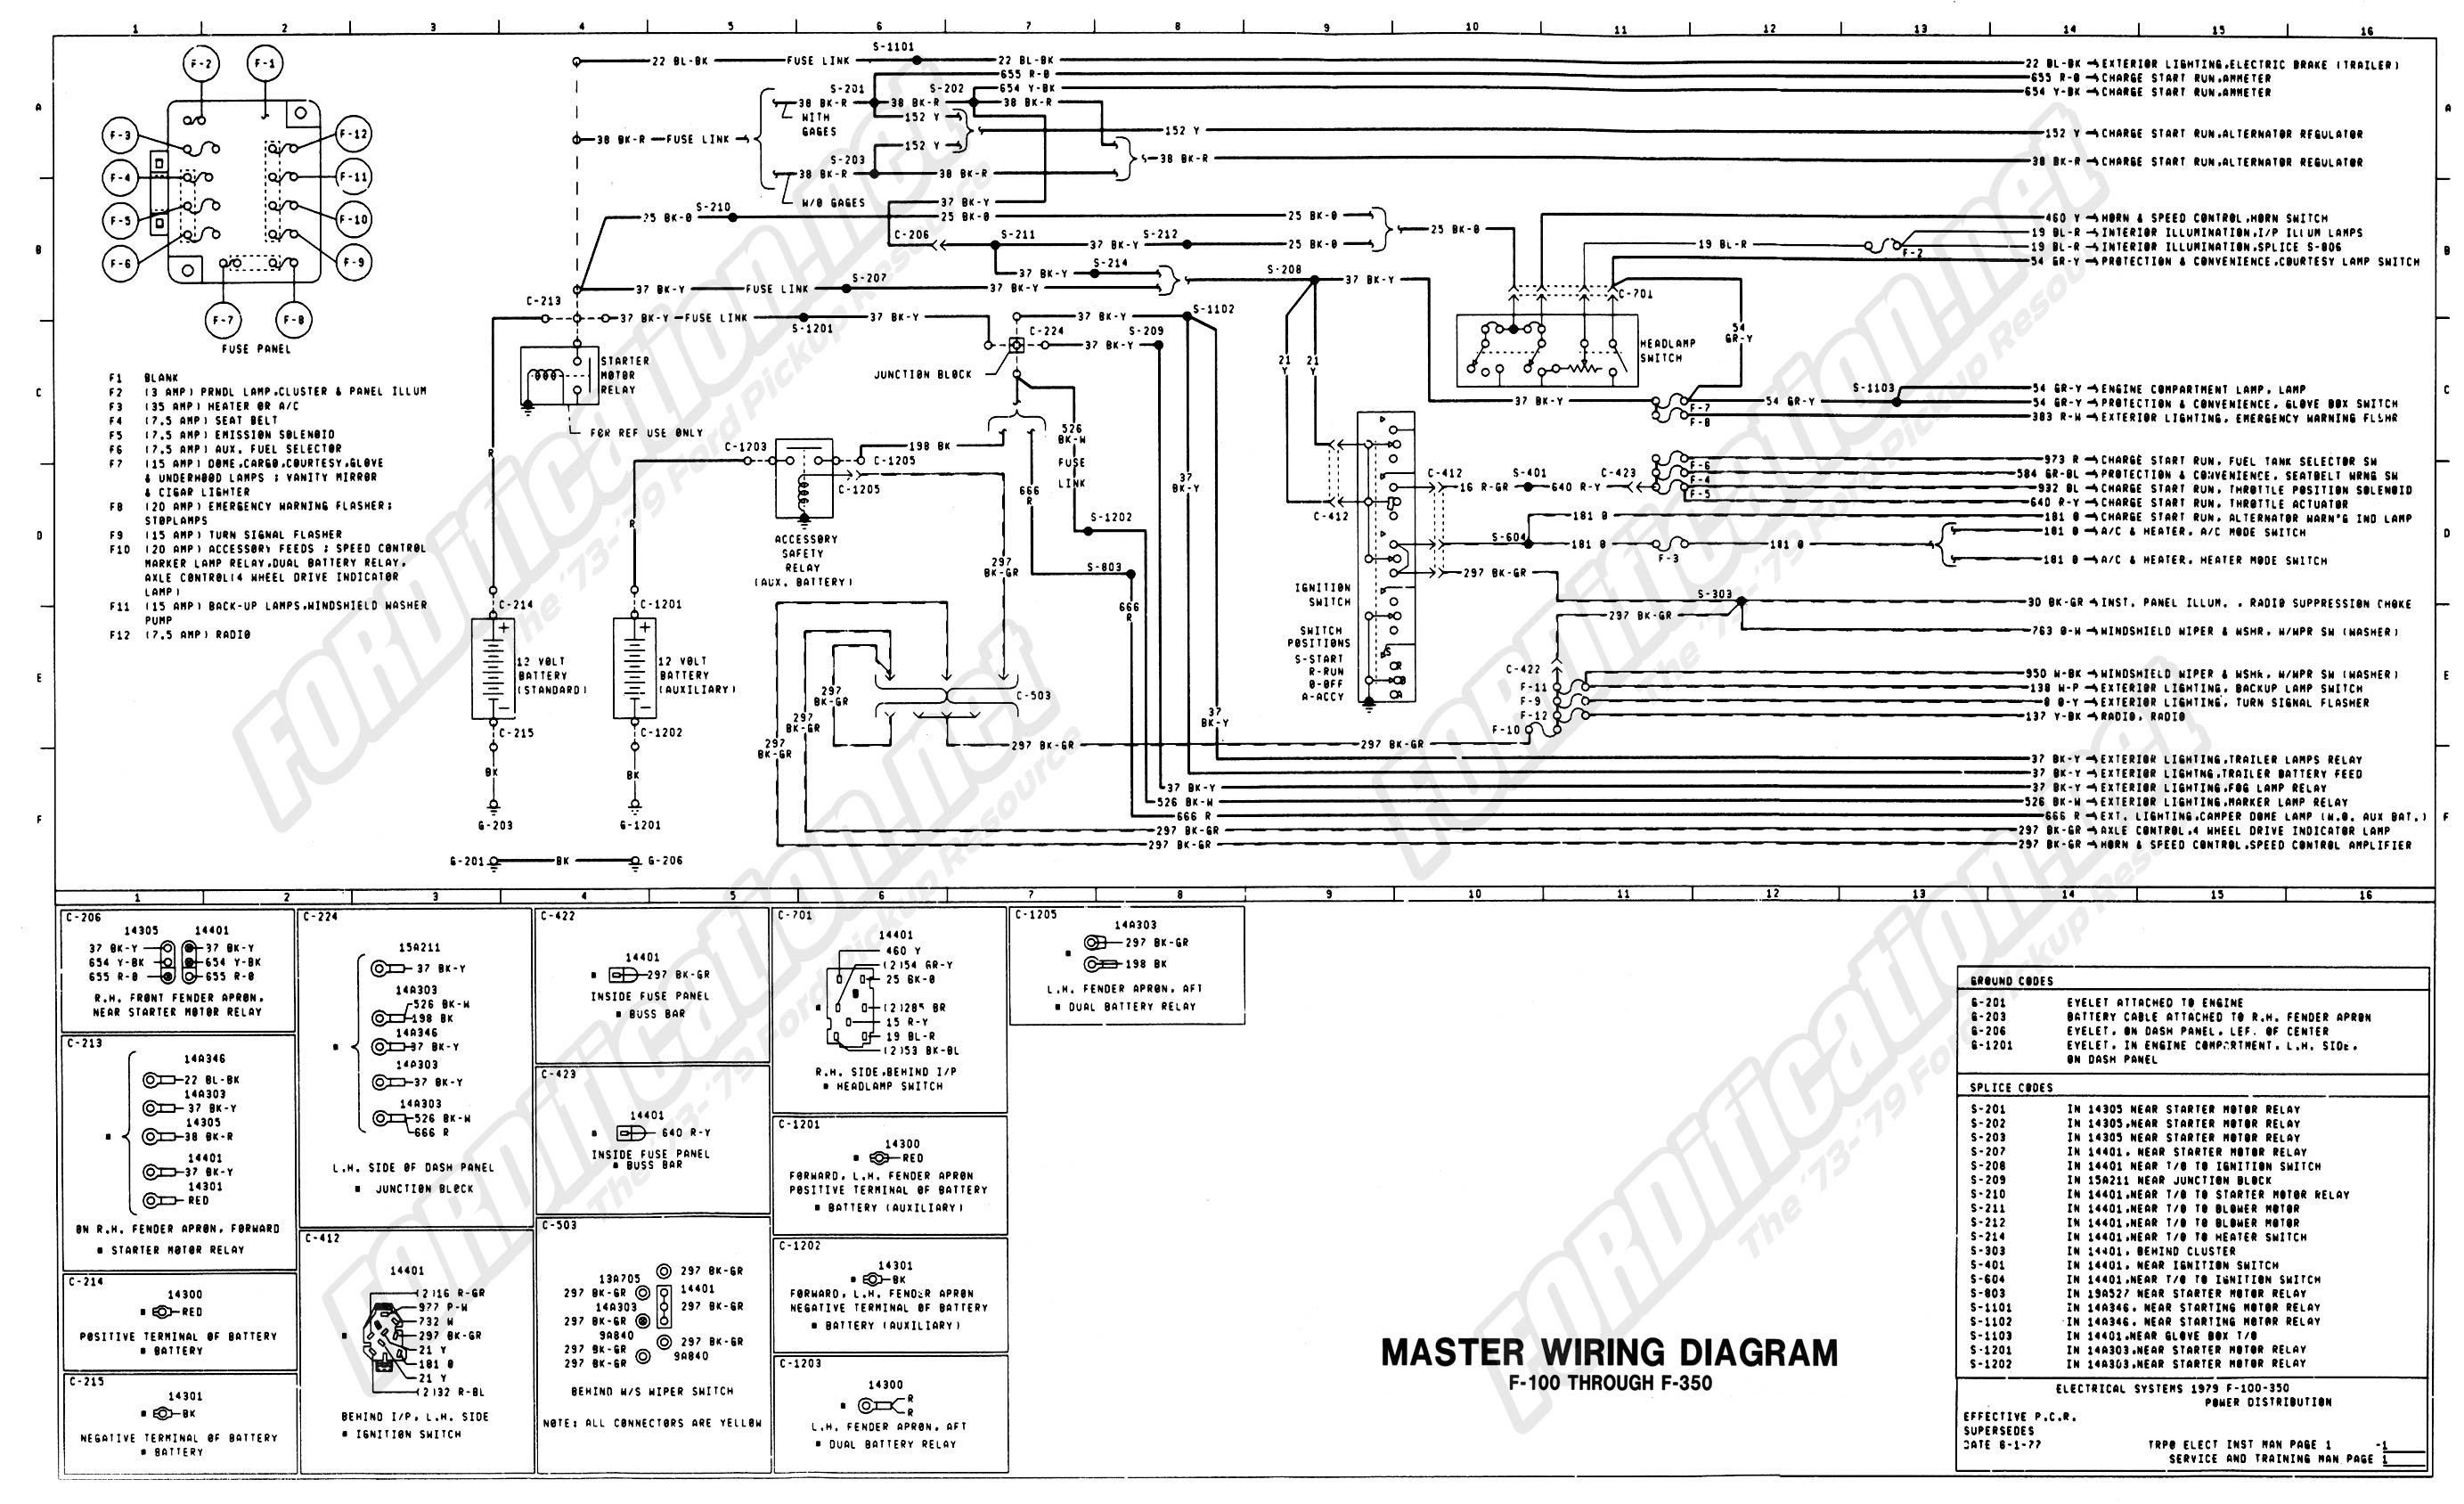 1999 Sterling Fuse Diagram. 1999. Free Printable Wiring